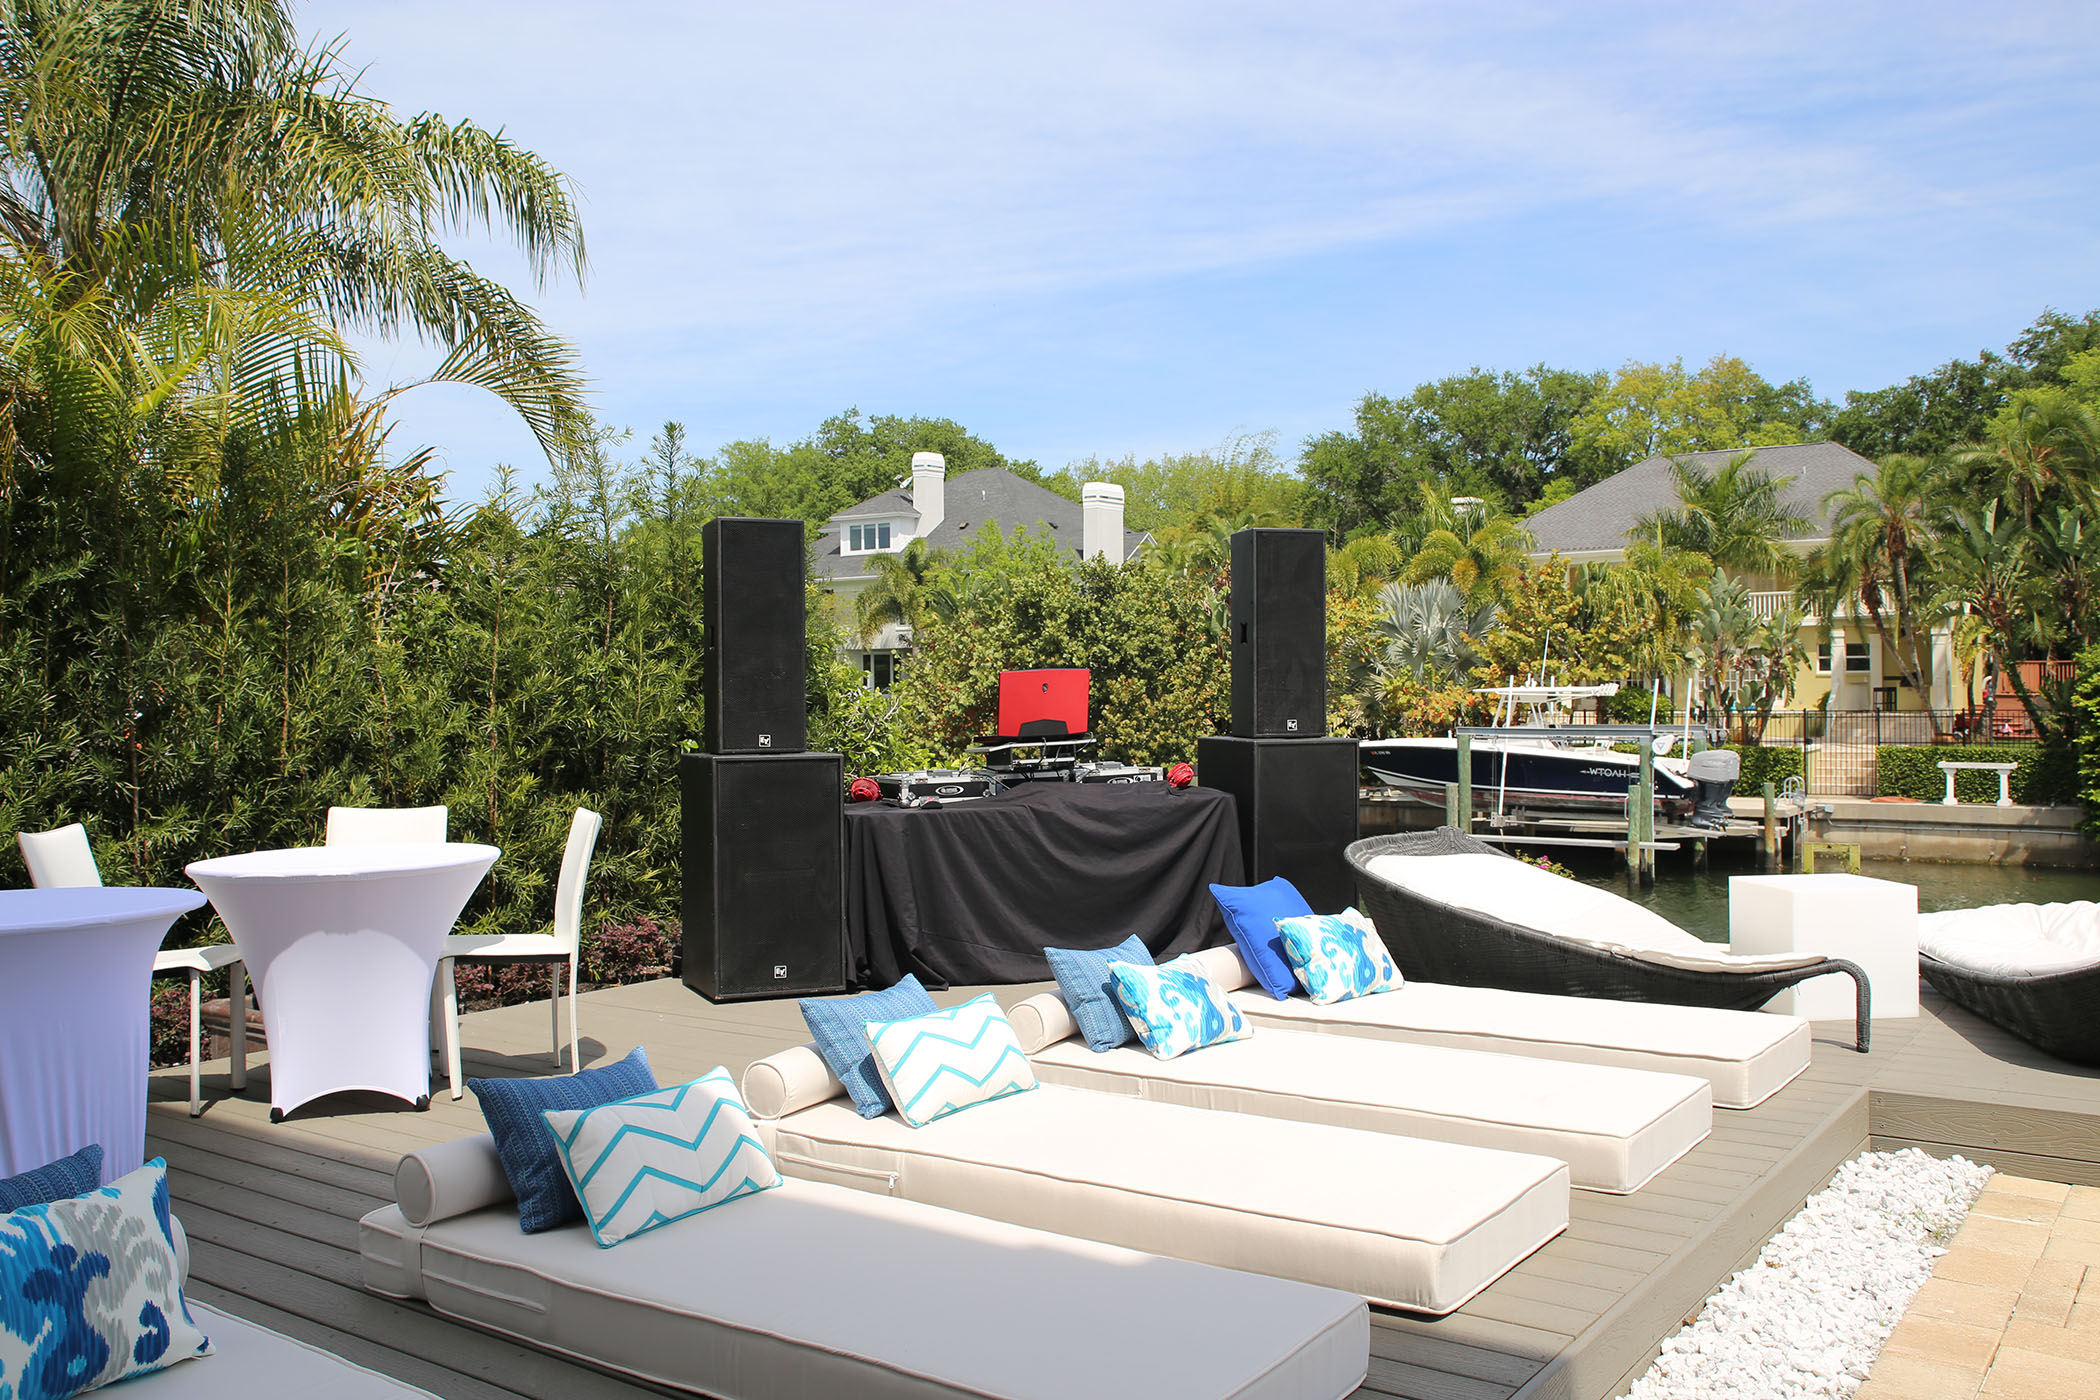 DJ Papi Setup at a Private Pool Party